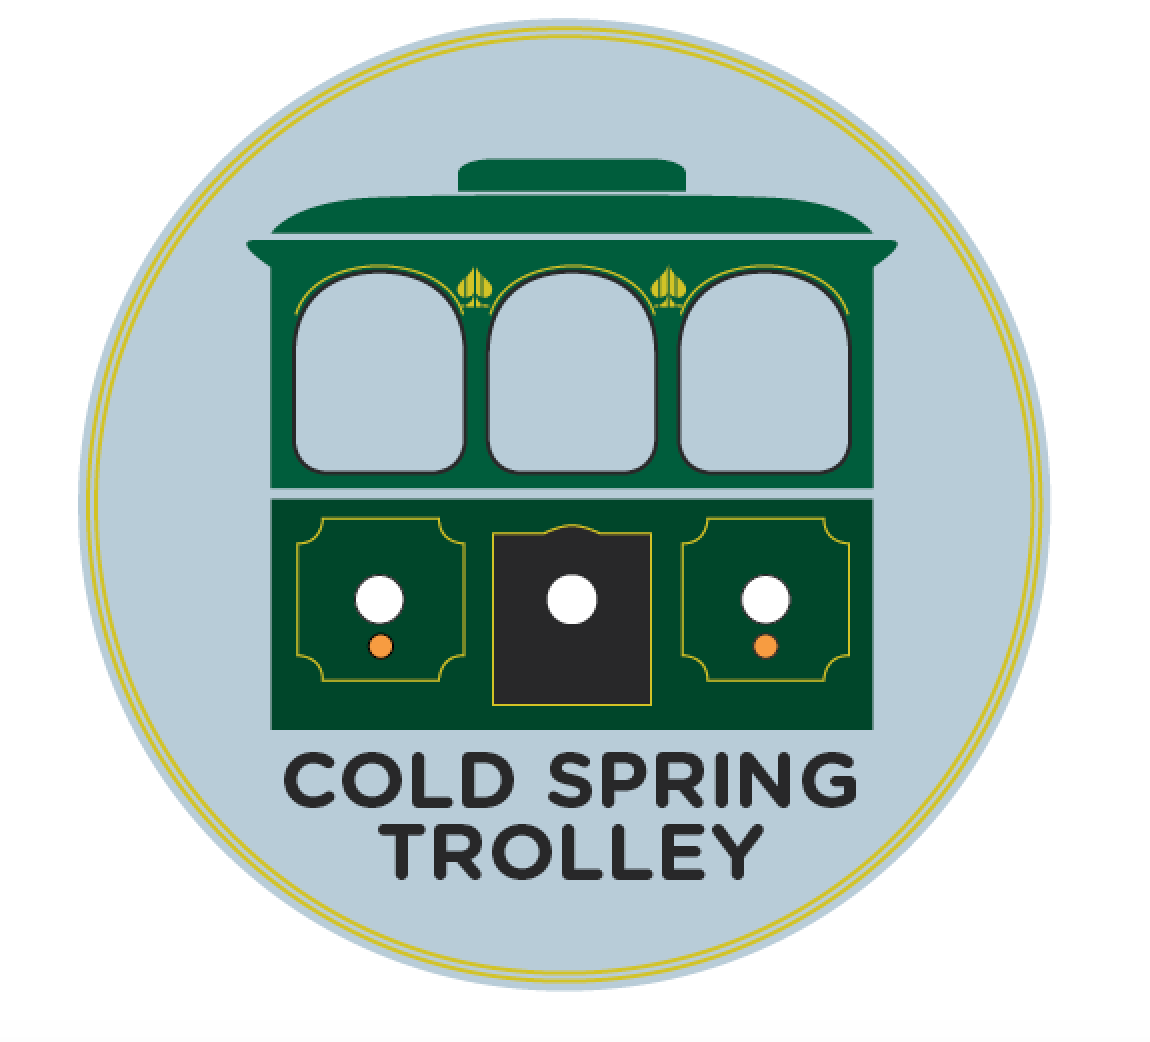 The Trolley Report - Coming soon… Branding. Communication. Promotion.